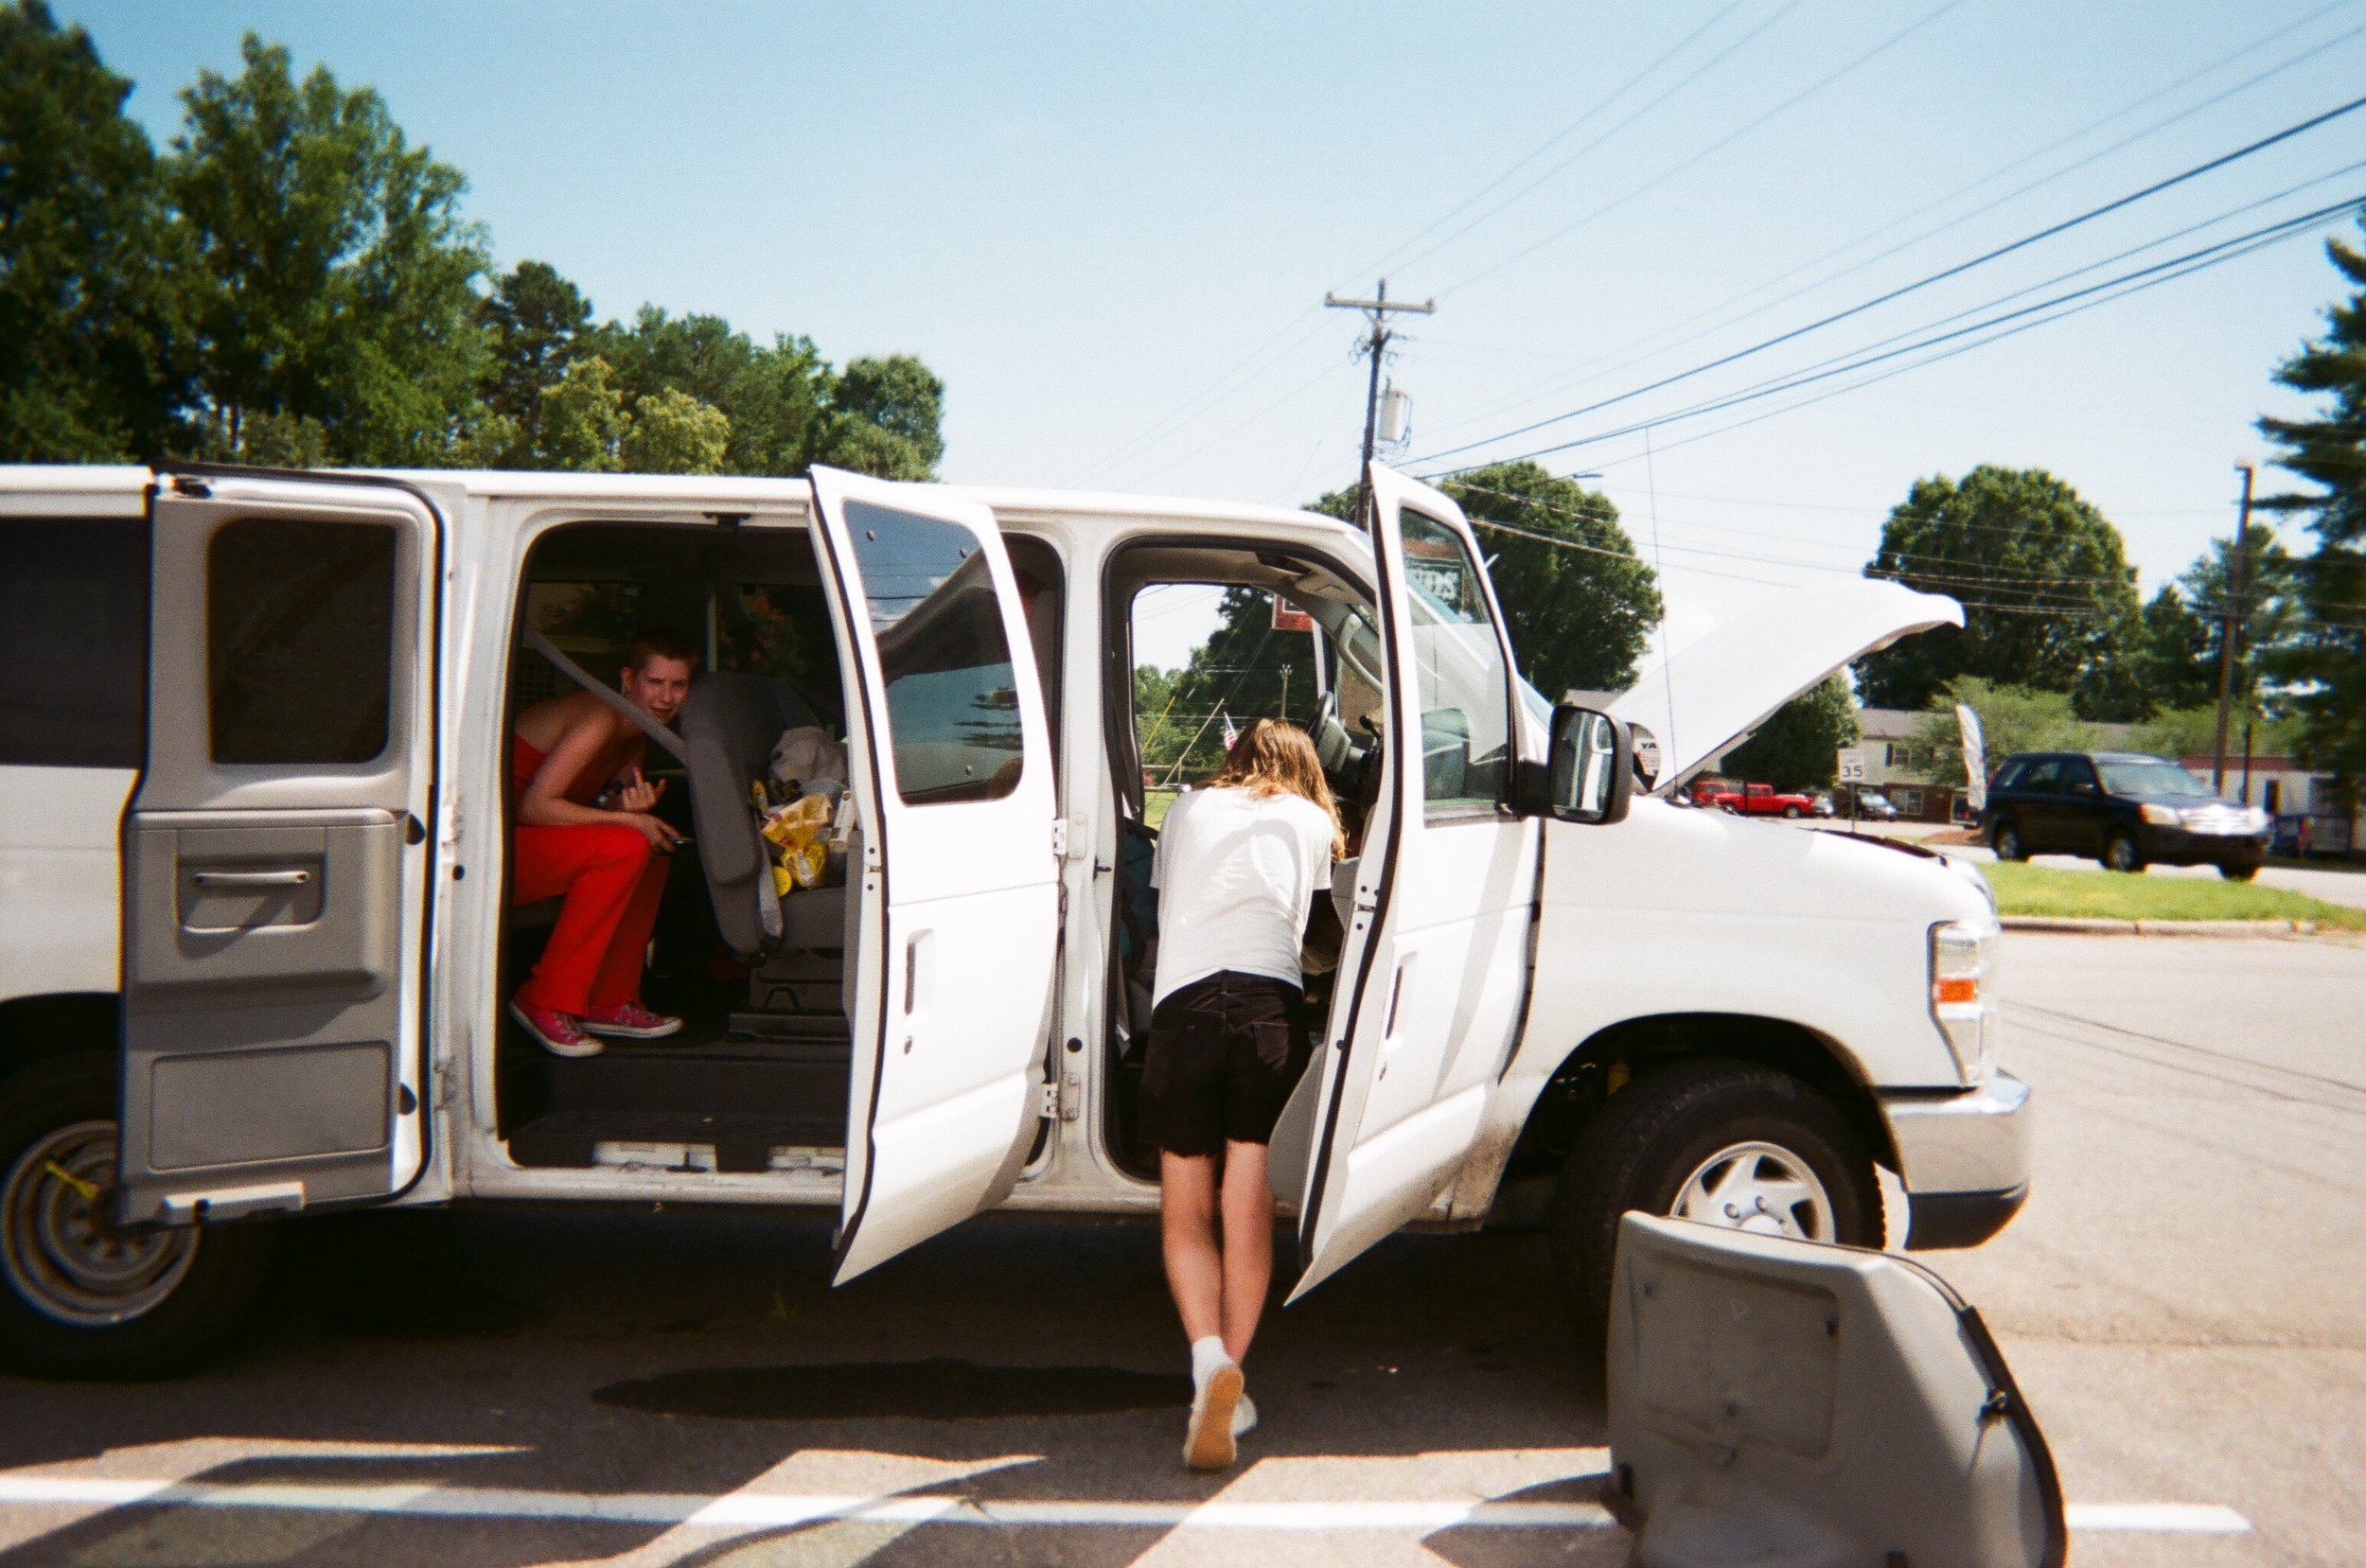 GG july 2019 - on our way to Carrboro_2.jpg